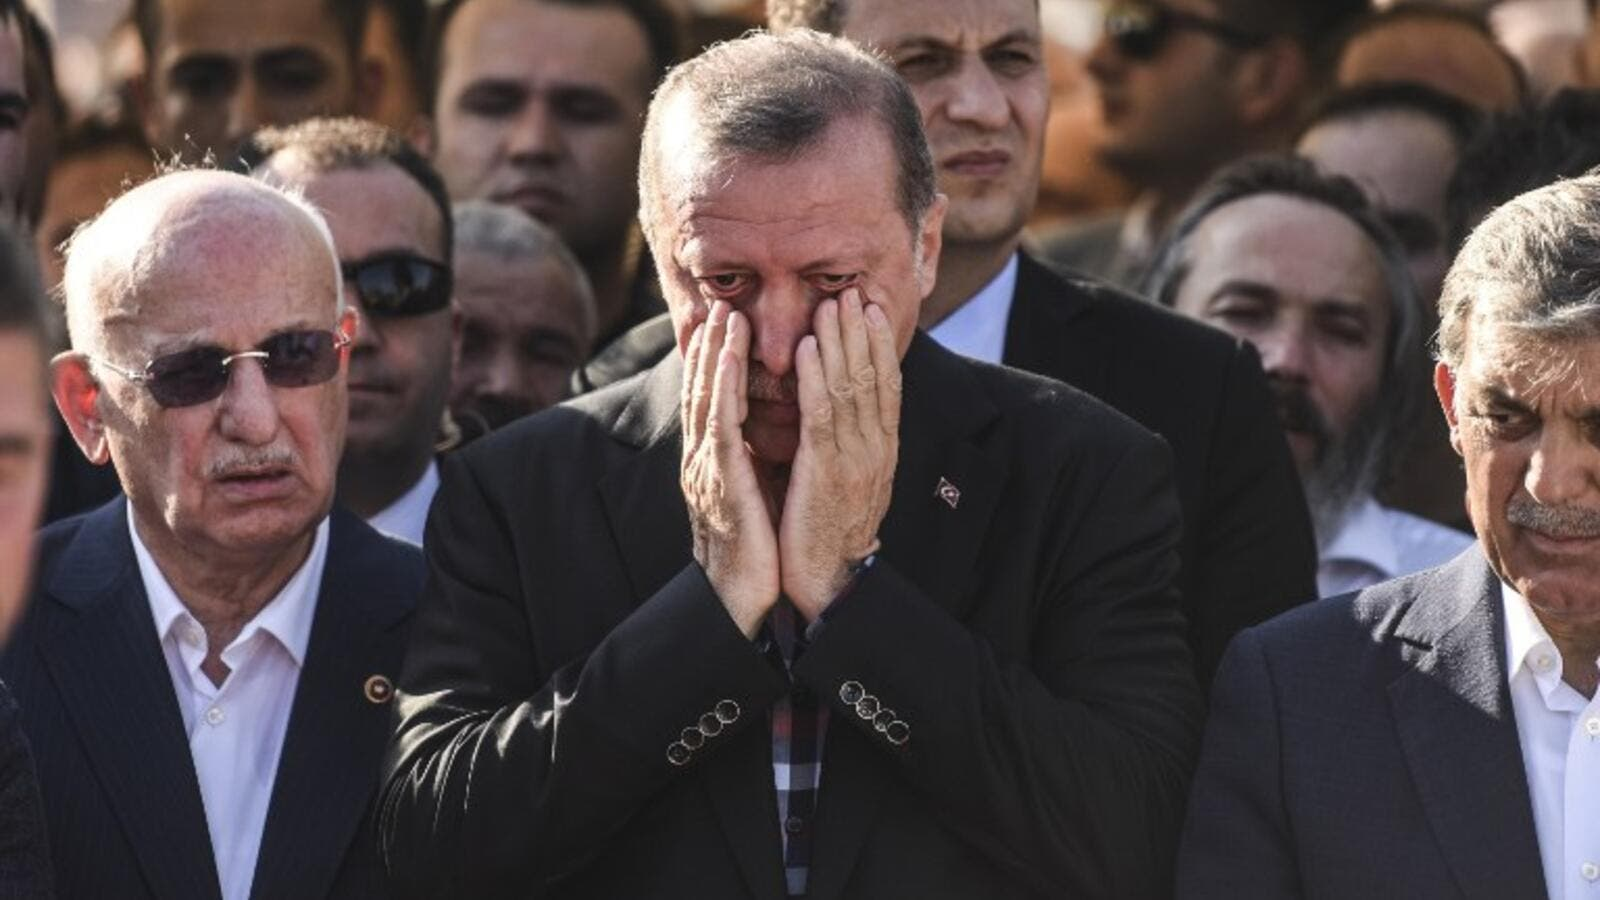 Turkey's President Recep Tayyip Erdogan reacts after attending the funeral of a victim of the coup attempt in Istanbul on July 17, 2016. (AFP/Bulent Kilic)